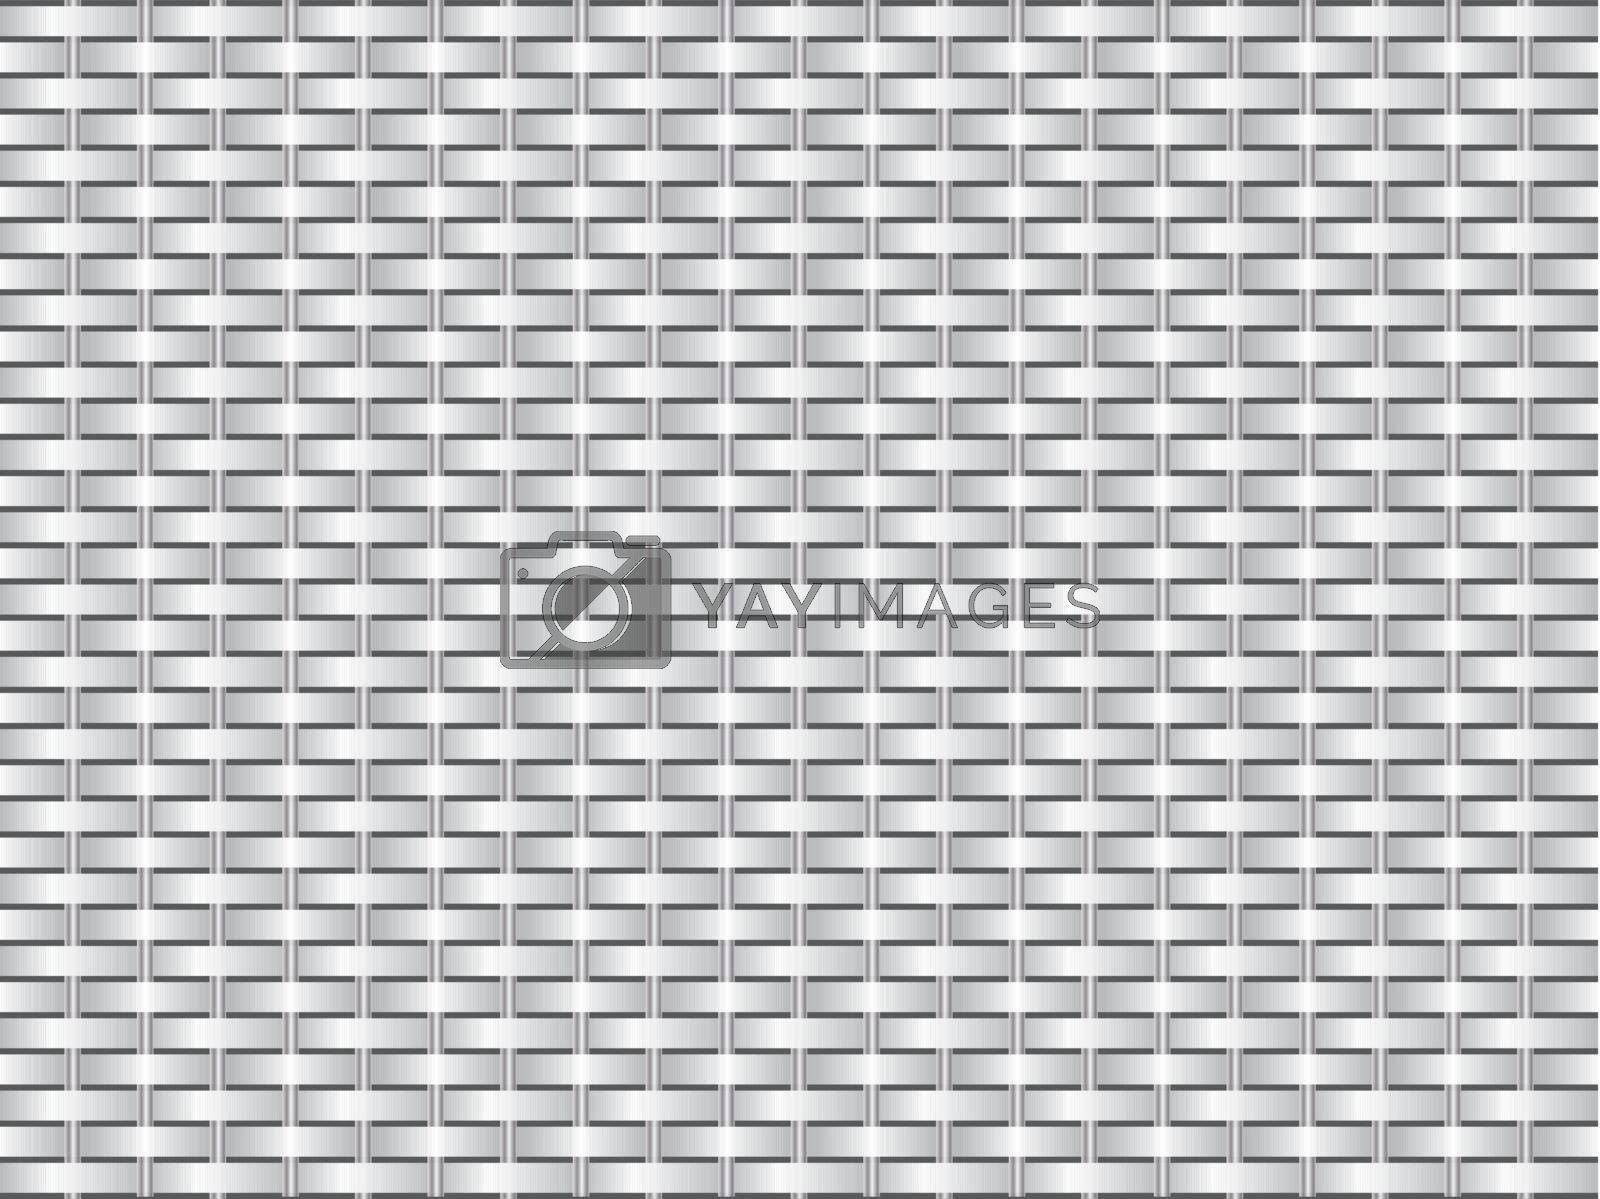 Grid like texture design with metal bars